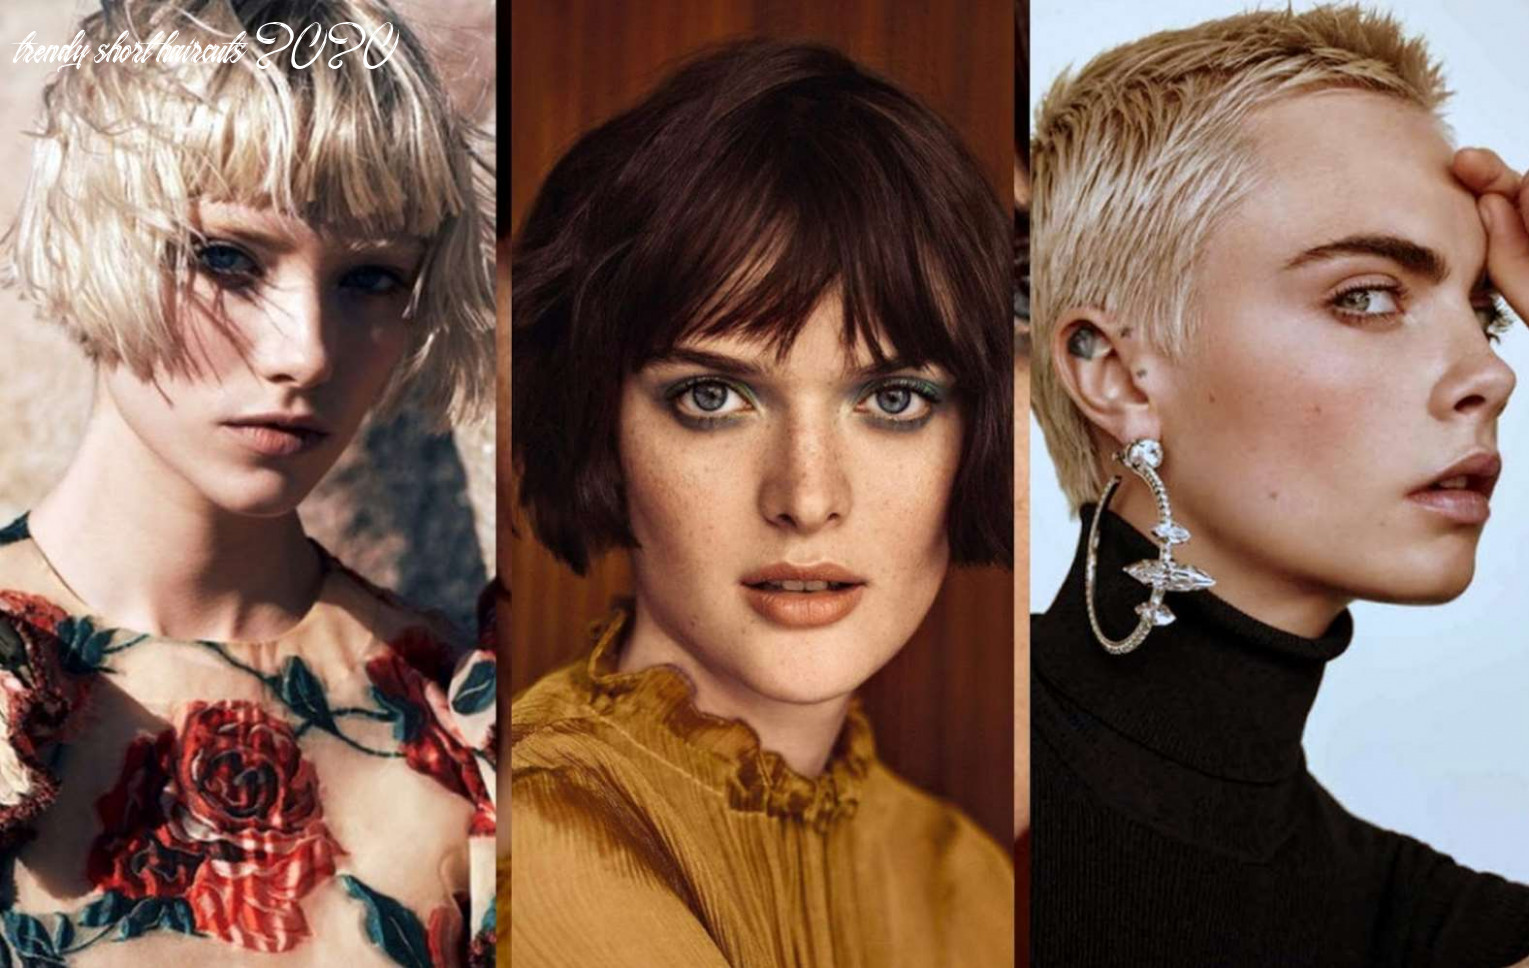 Top 12 short hairstyles and haircuts for women that are in style